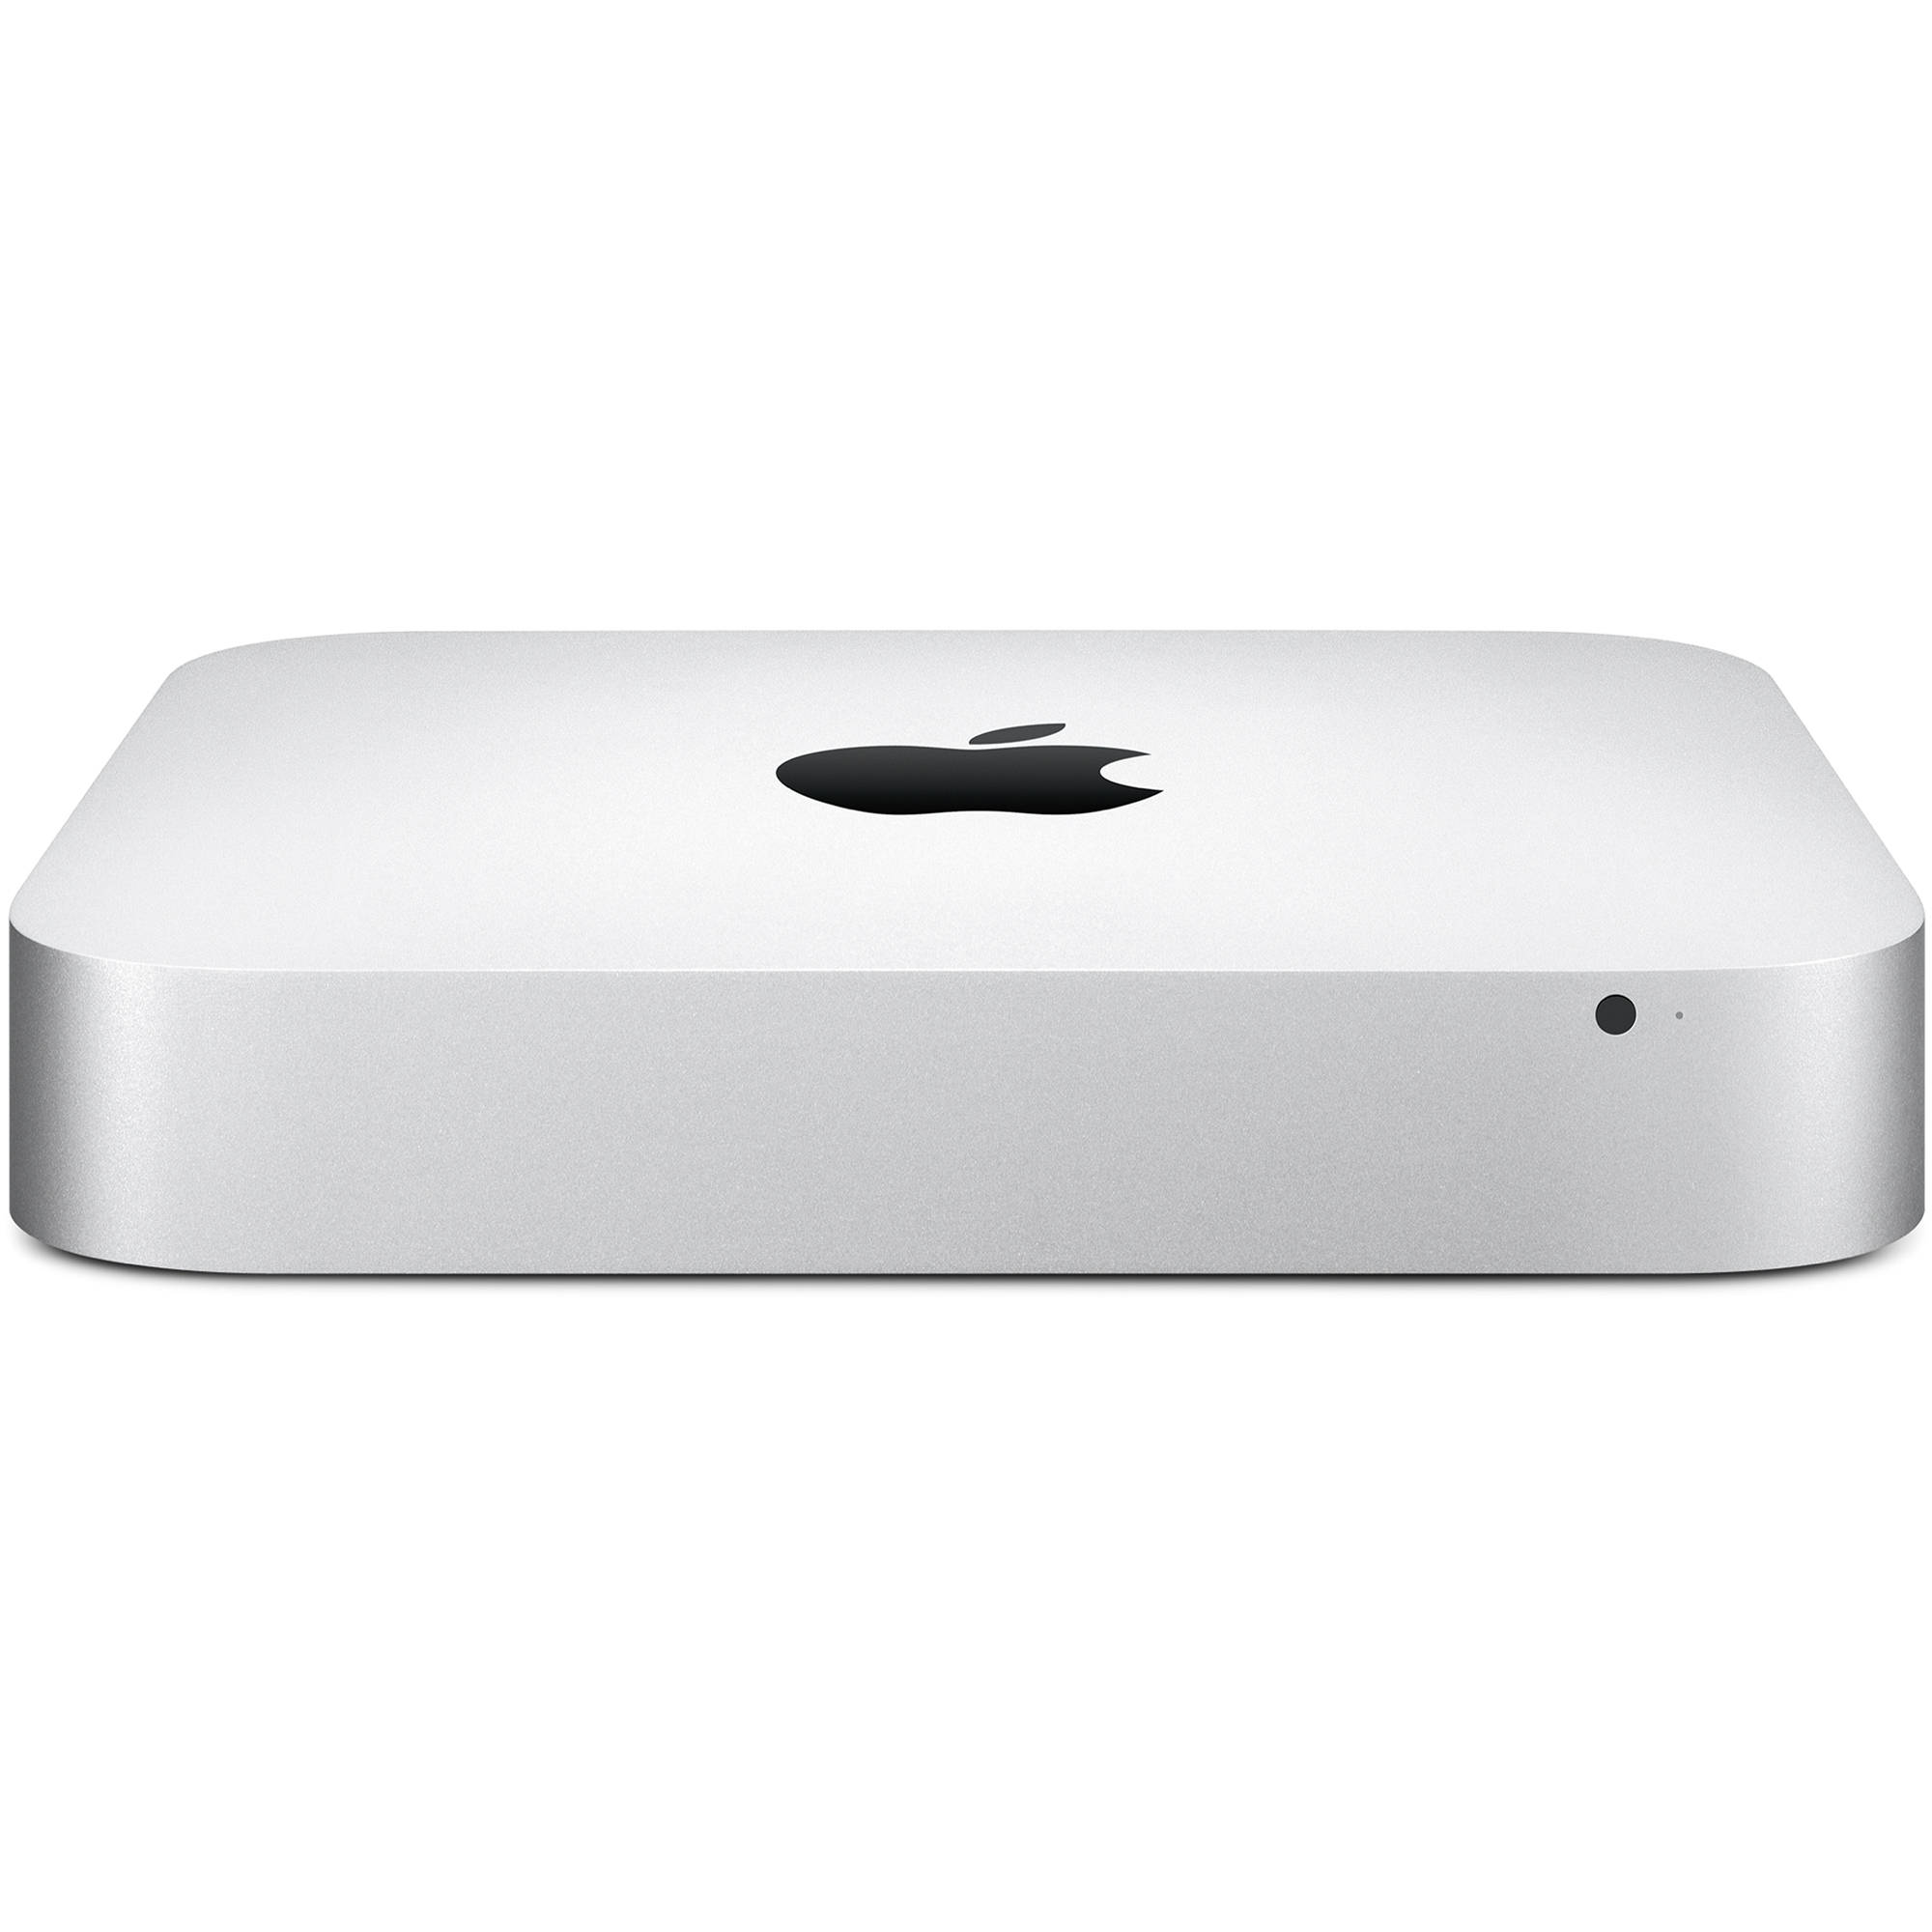 The entry-level new Mac Mini gets a performance boost